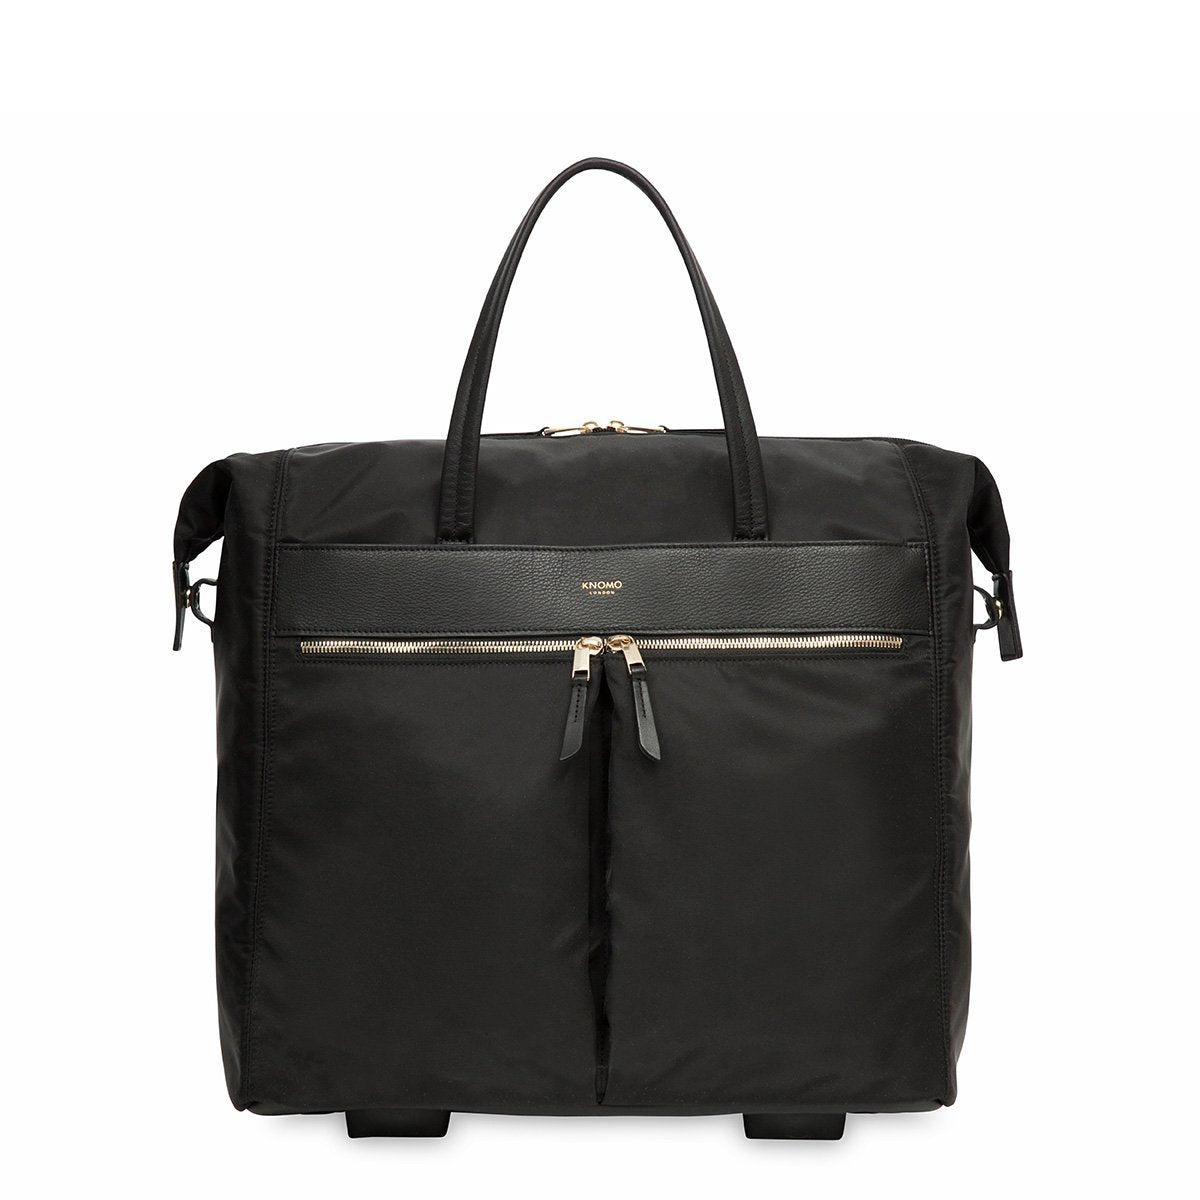 "Sedley 15"" Womens Wheeled Laptop and Travel Tote Bag - Black – KNOMO"